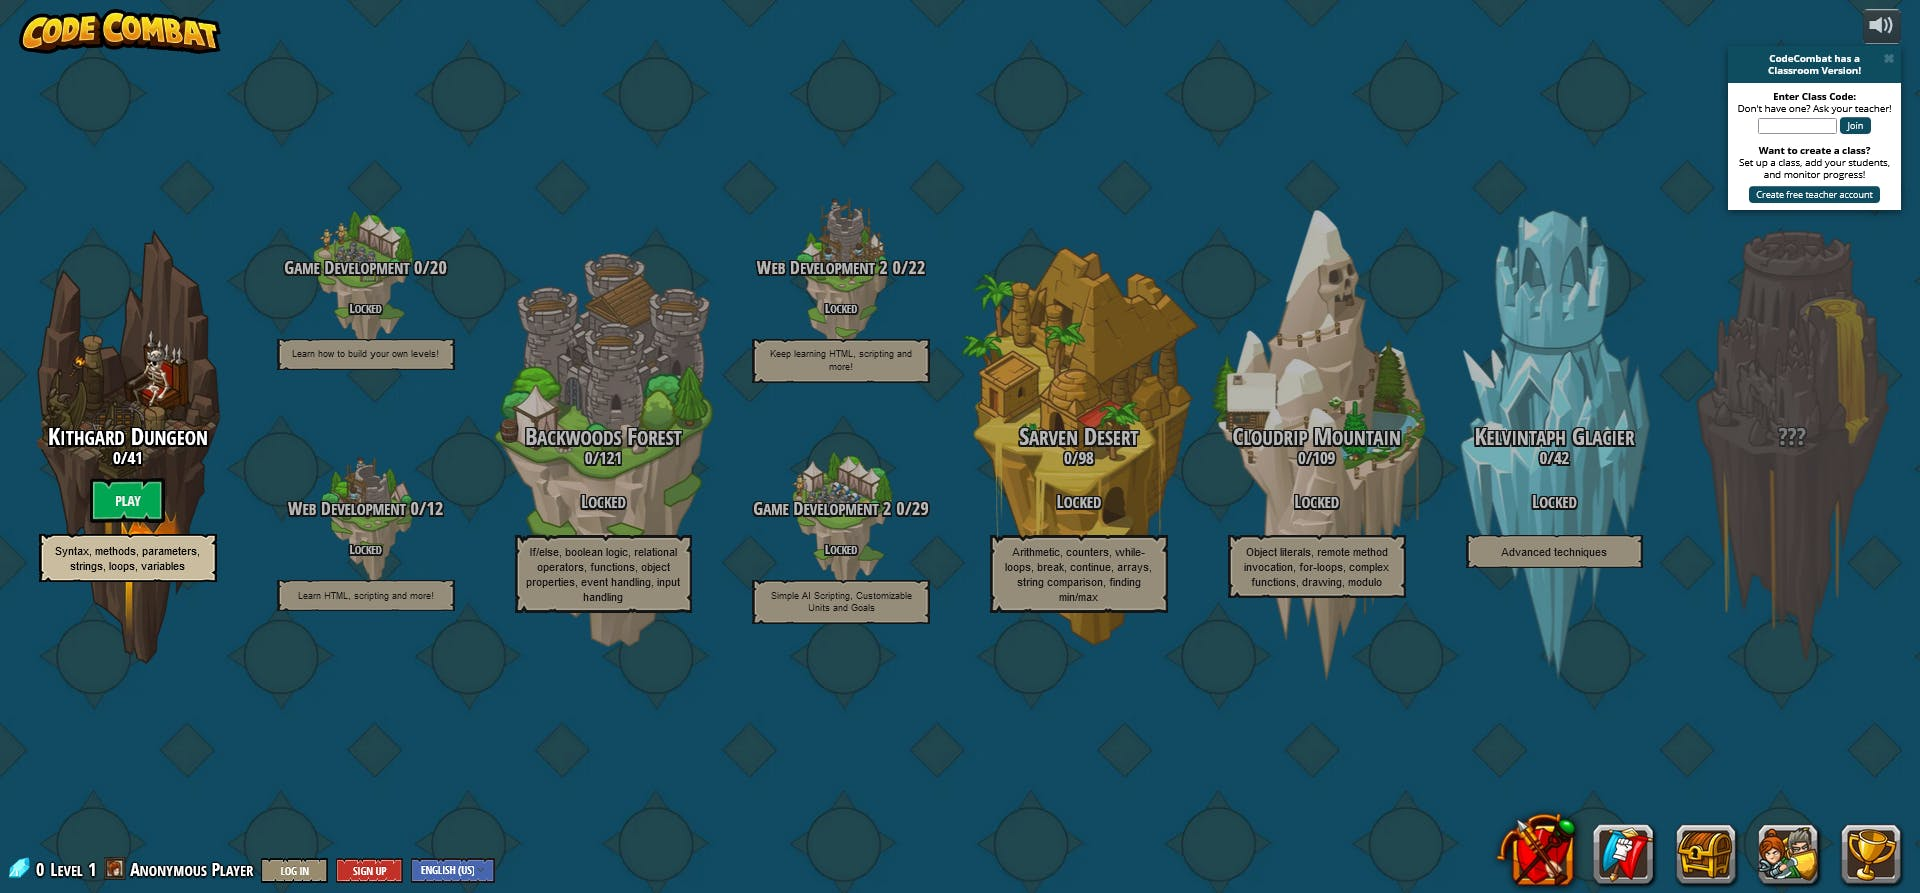 Screenshot 2021-05-07 at 11-24-28 CodeCombat - Coding games to learn Python and JavaScript.png